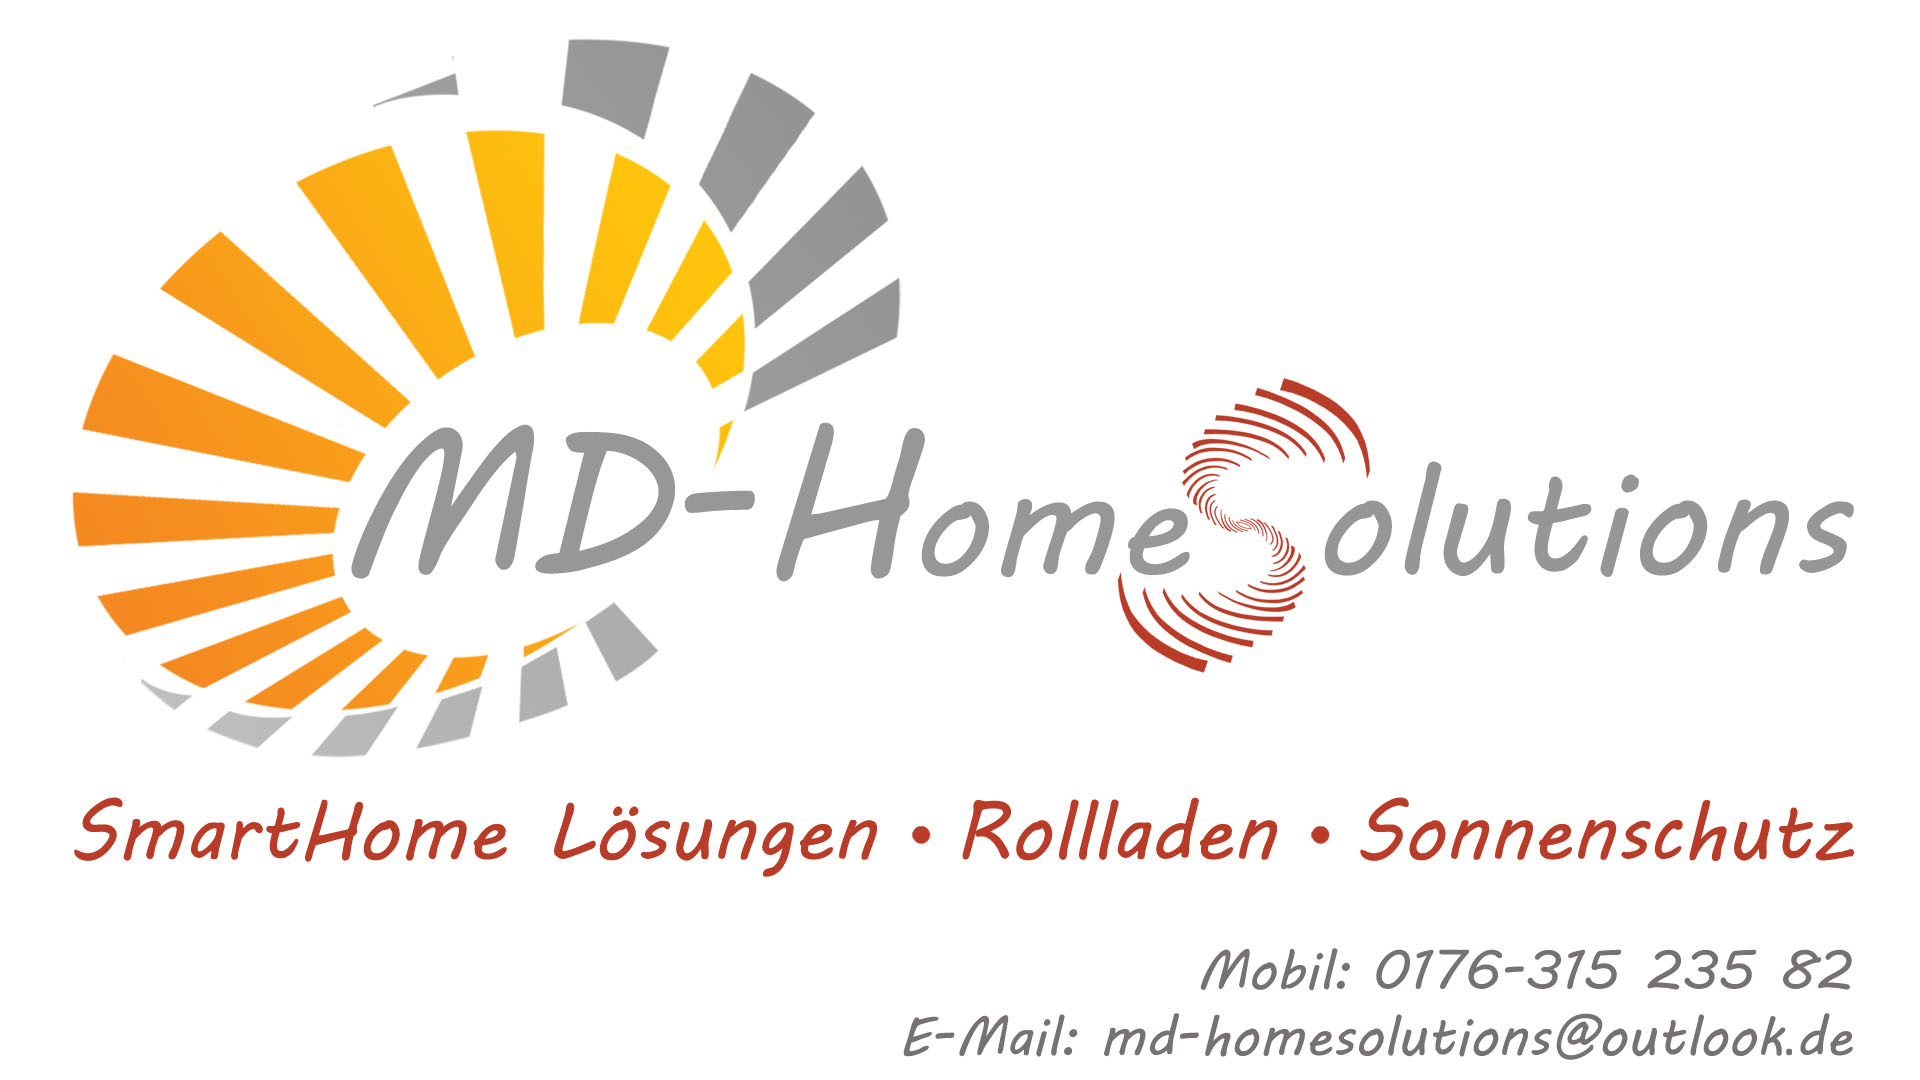 MD-HomeSolutions.de